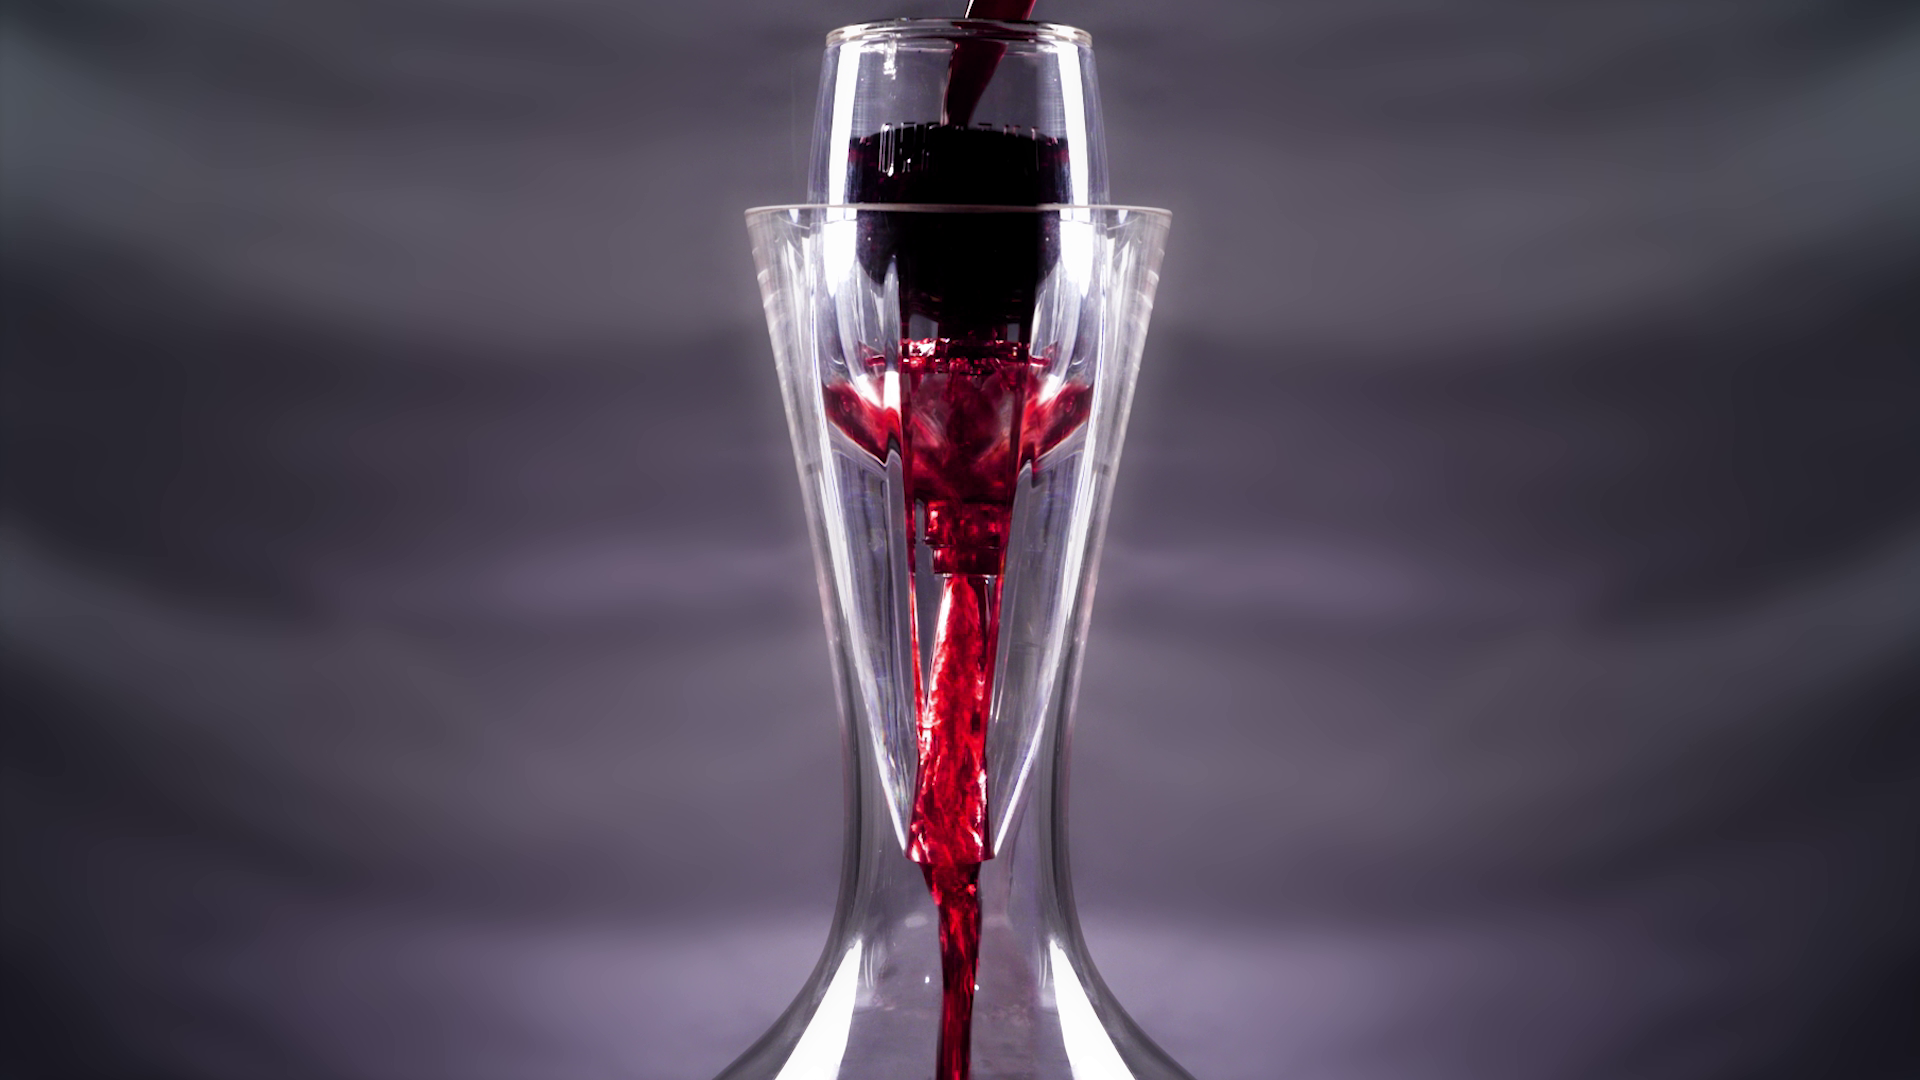 Vintorio Omni Wine Aerator Video Screenshot